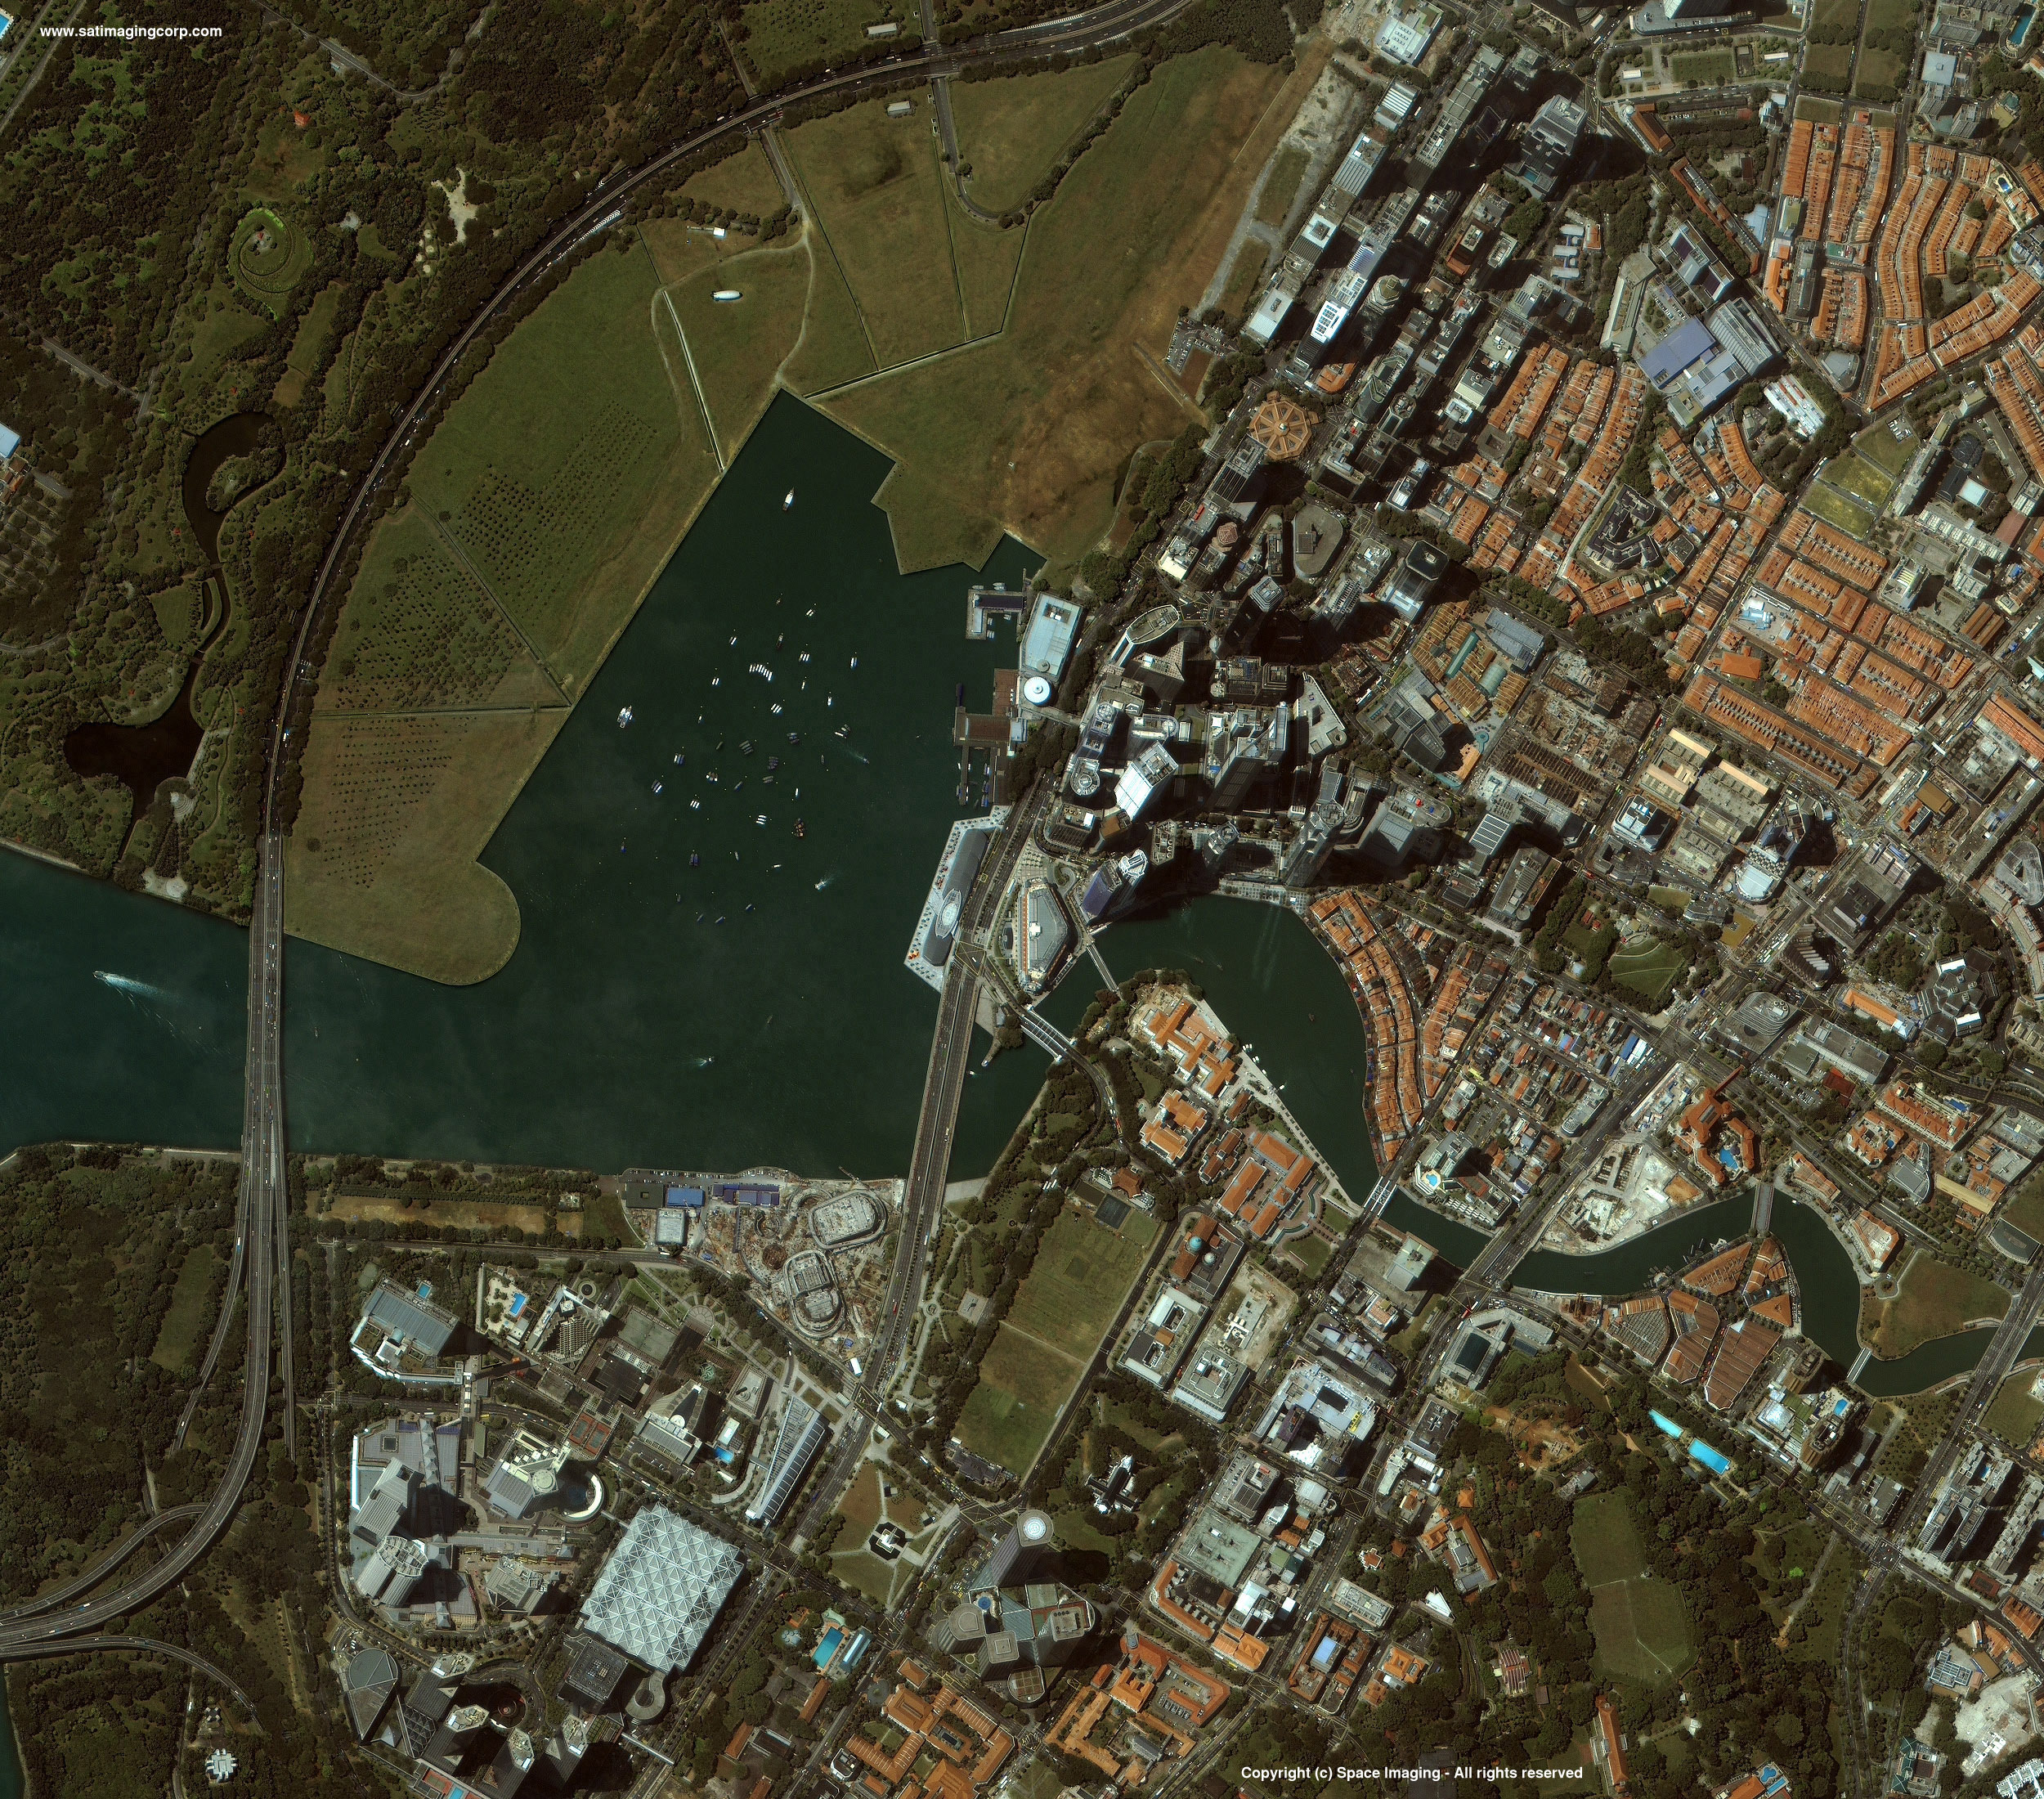 IKONOS Satellite Image Of Singapore Satellite Imaging Corp - Search satellite maps